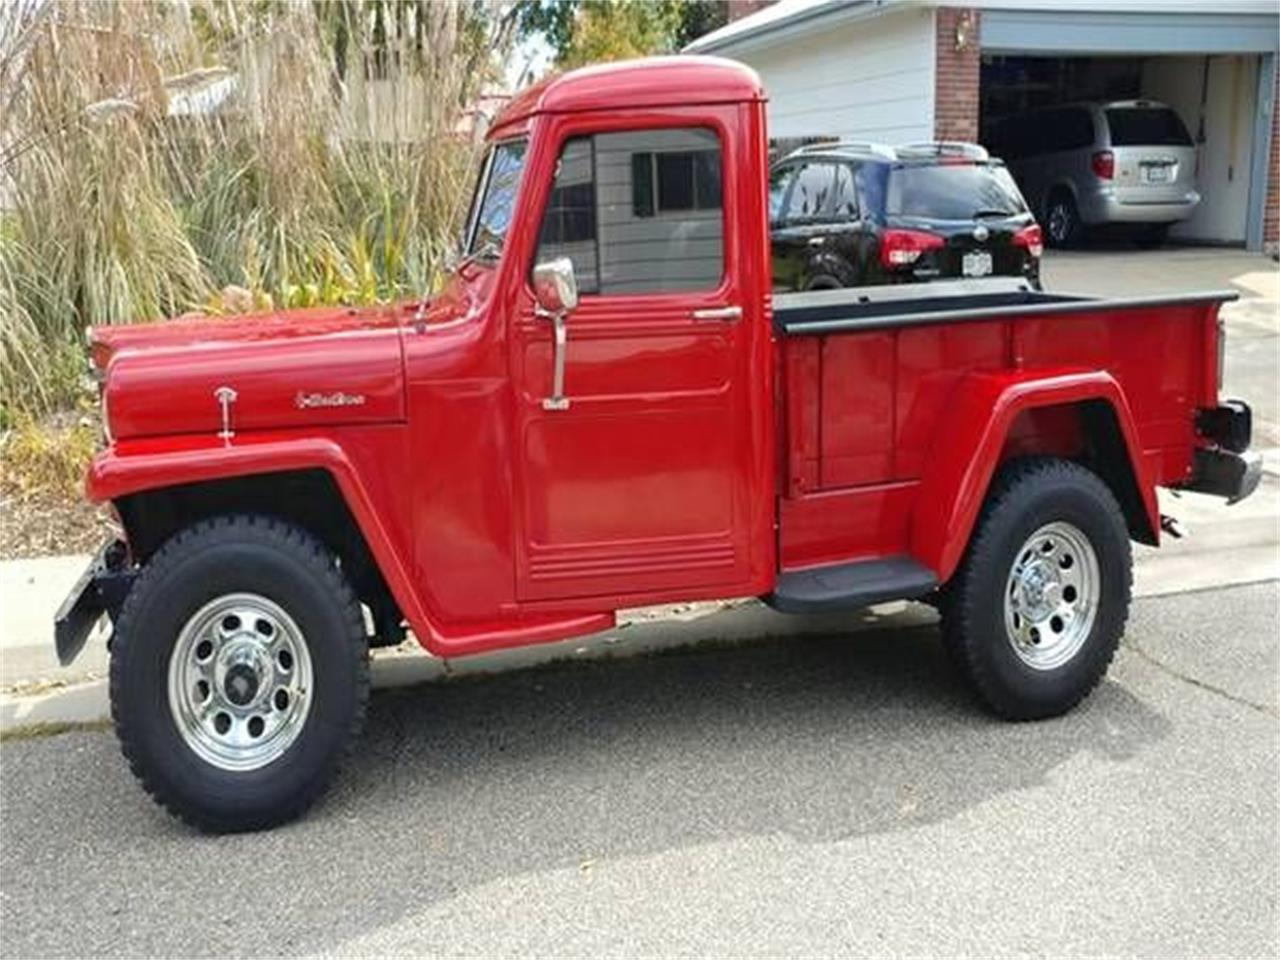 1960 Willys Pickup For Sale Classiccars Com Cc 1173392